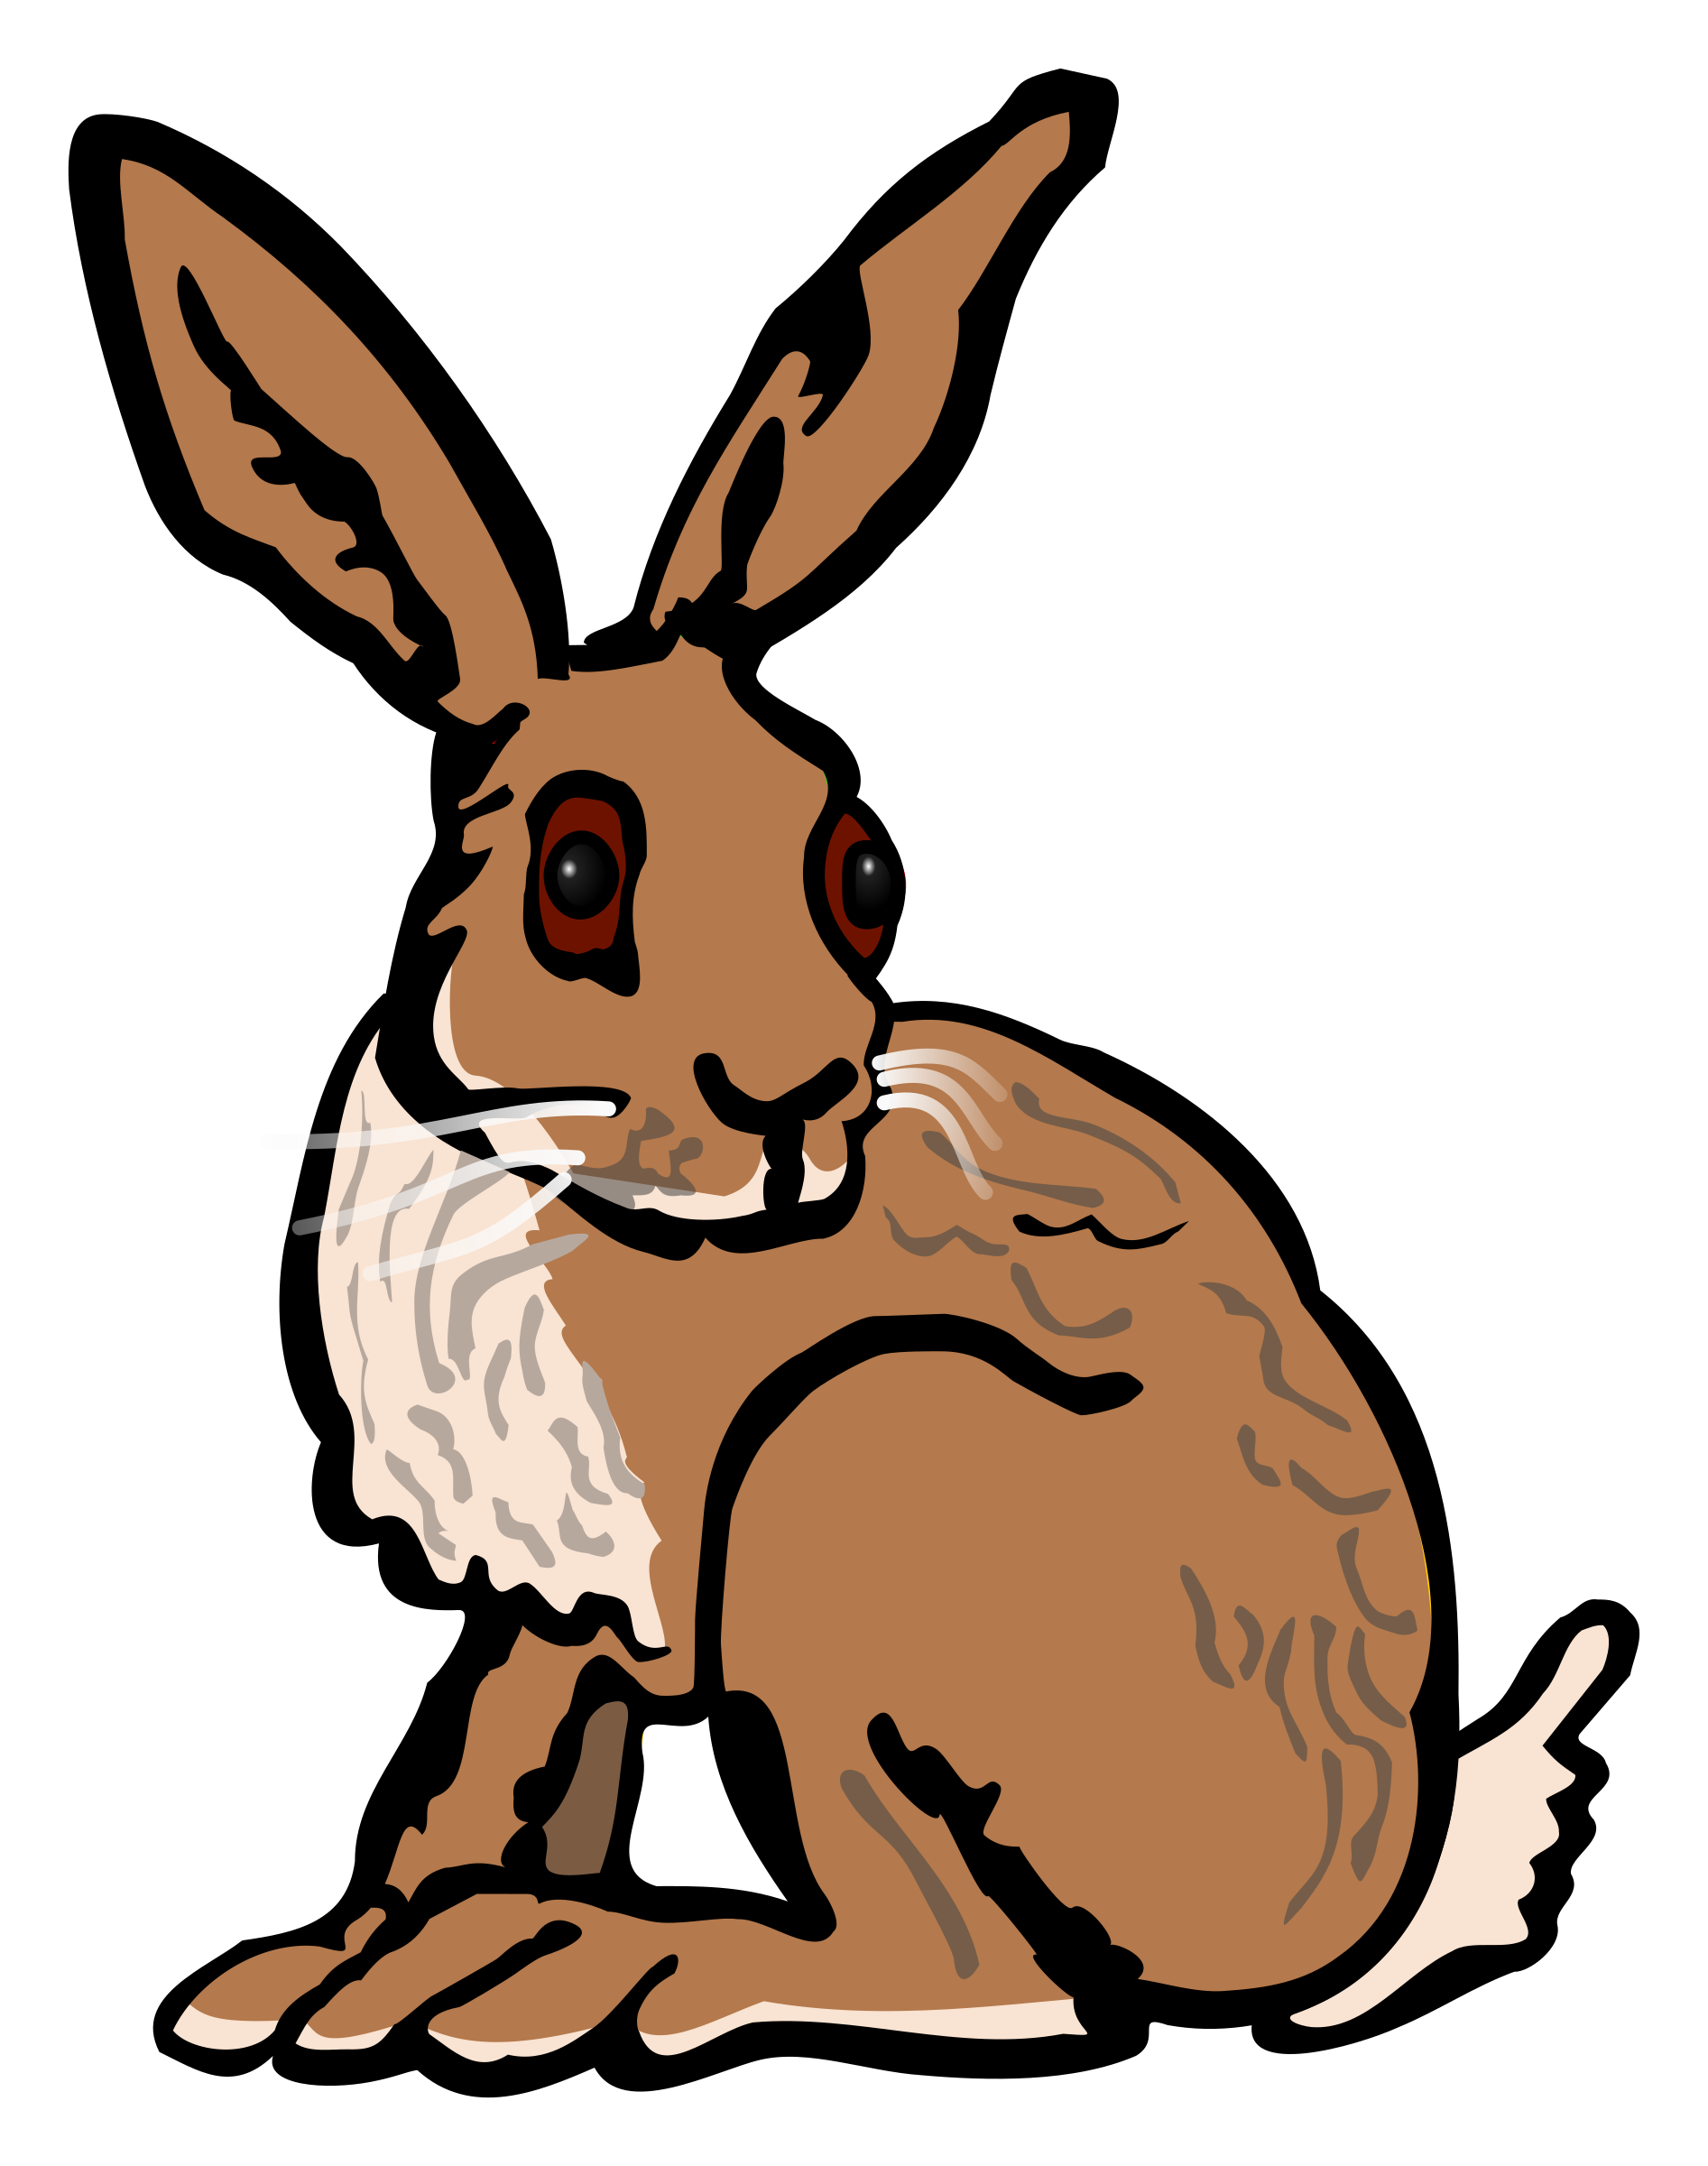 Hare clipart #12, Download drawings